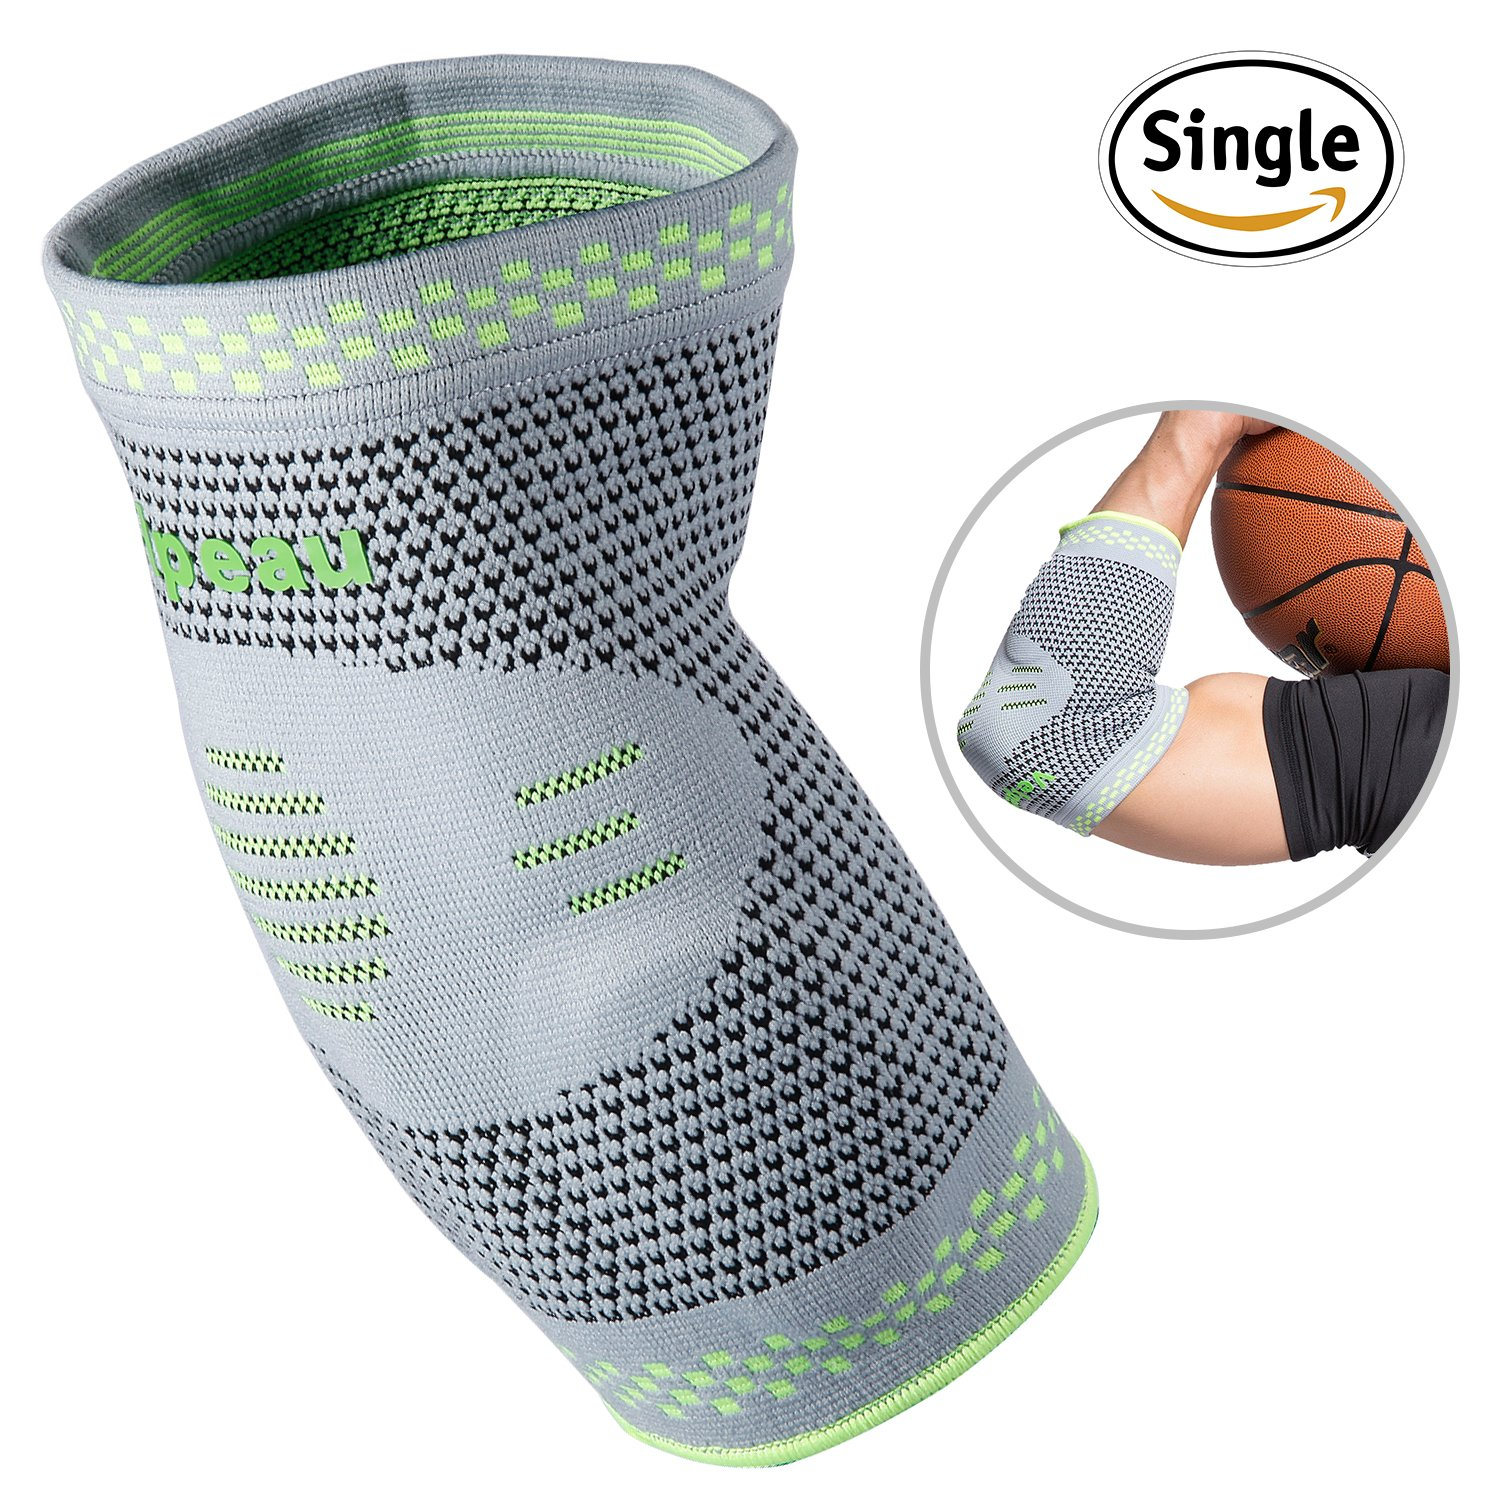 Elbow Brace Compression Sleeve with Gel Pads Support for Tendonitis, Tennis Elbow & Golf Elbow Treatment, Arthritis, Reduce Joint Pain During Any Activity for Women & Men by Velpeau (Medium)